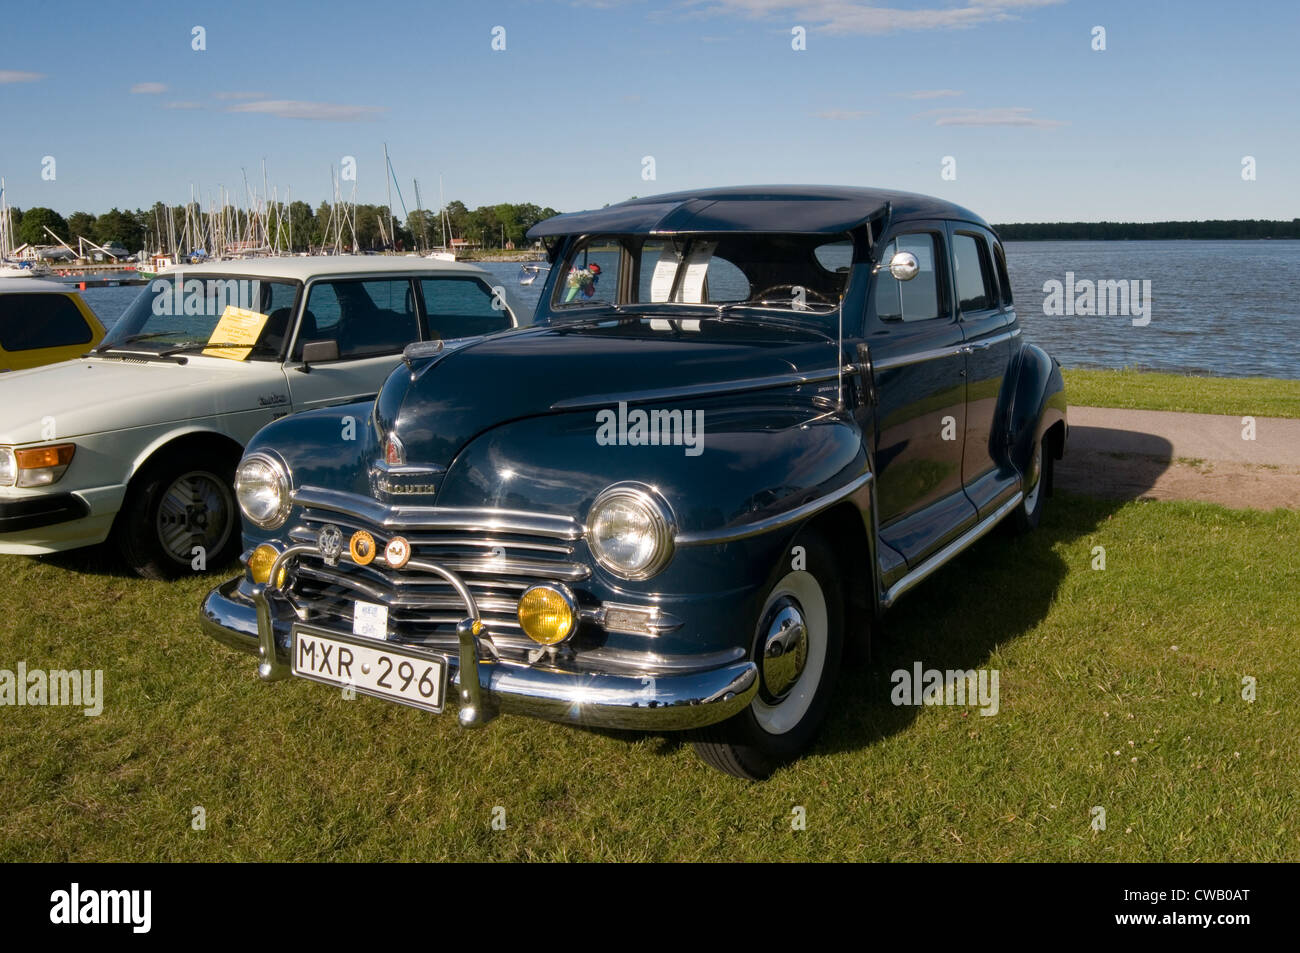 plymouth 1949 classic car cars old american Stock Photo: 50028912 ...